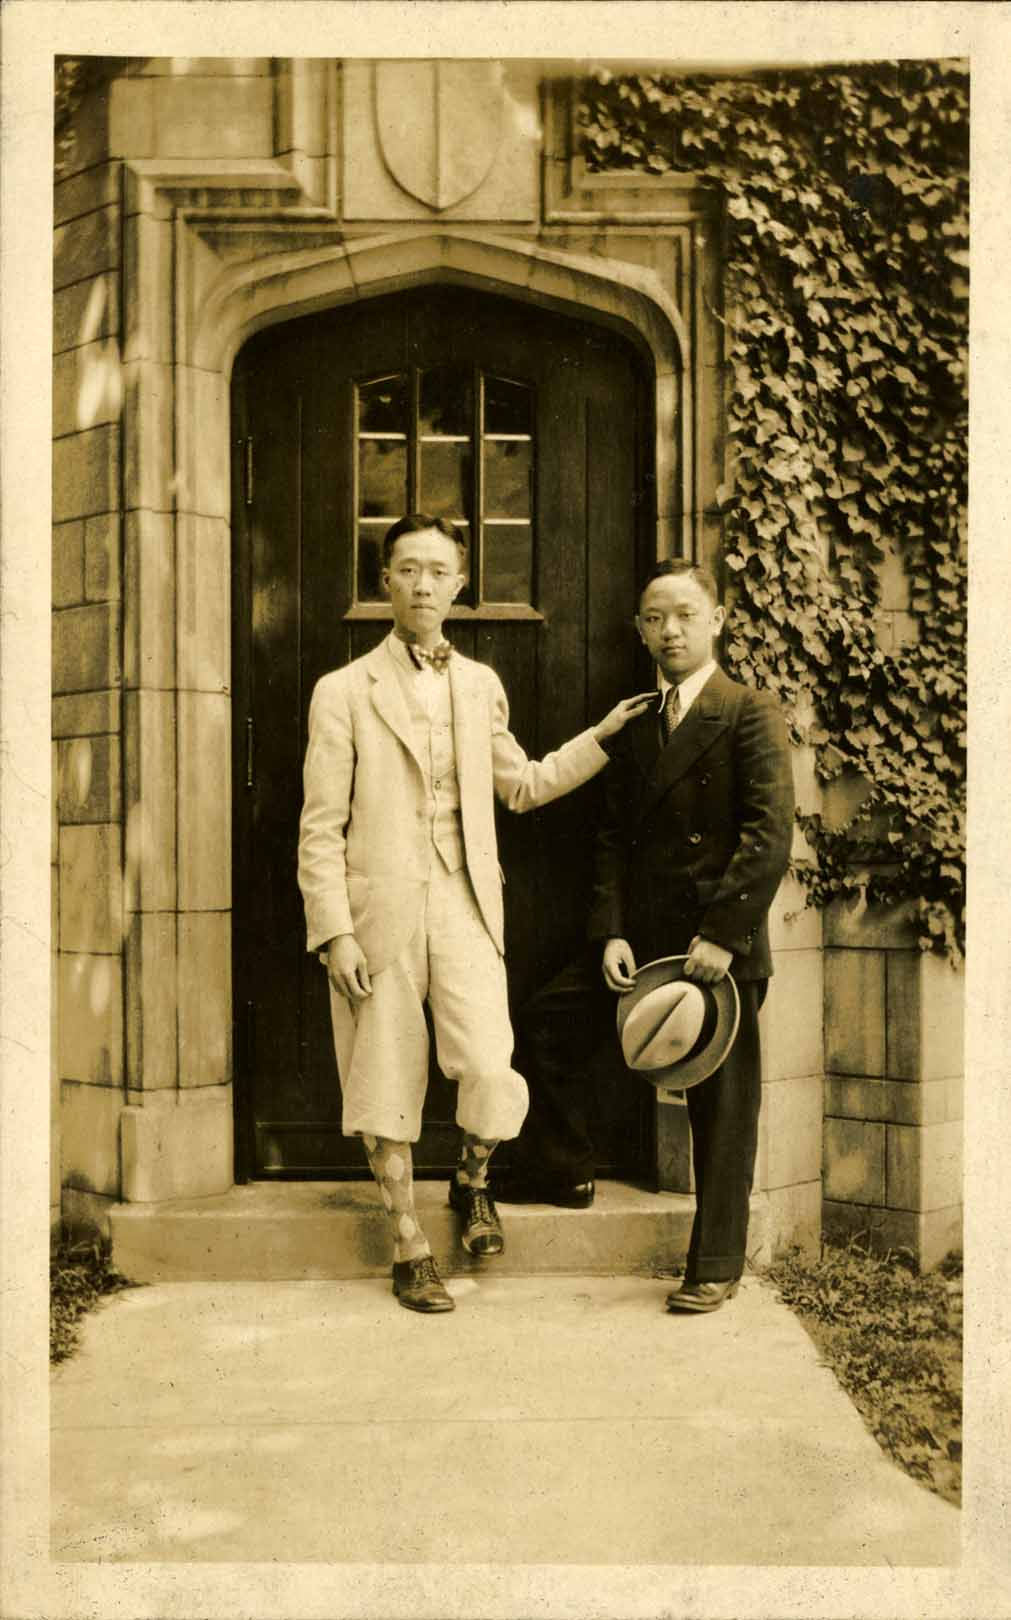 Onn Mann Liang posing with an unidentified man, 1928